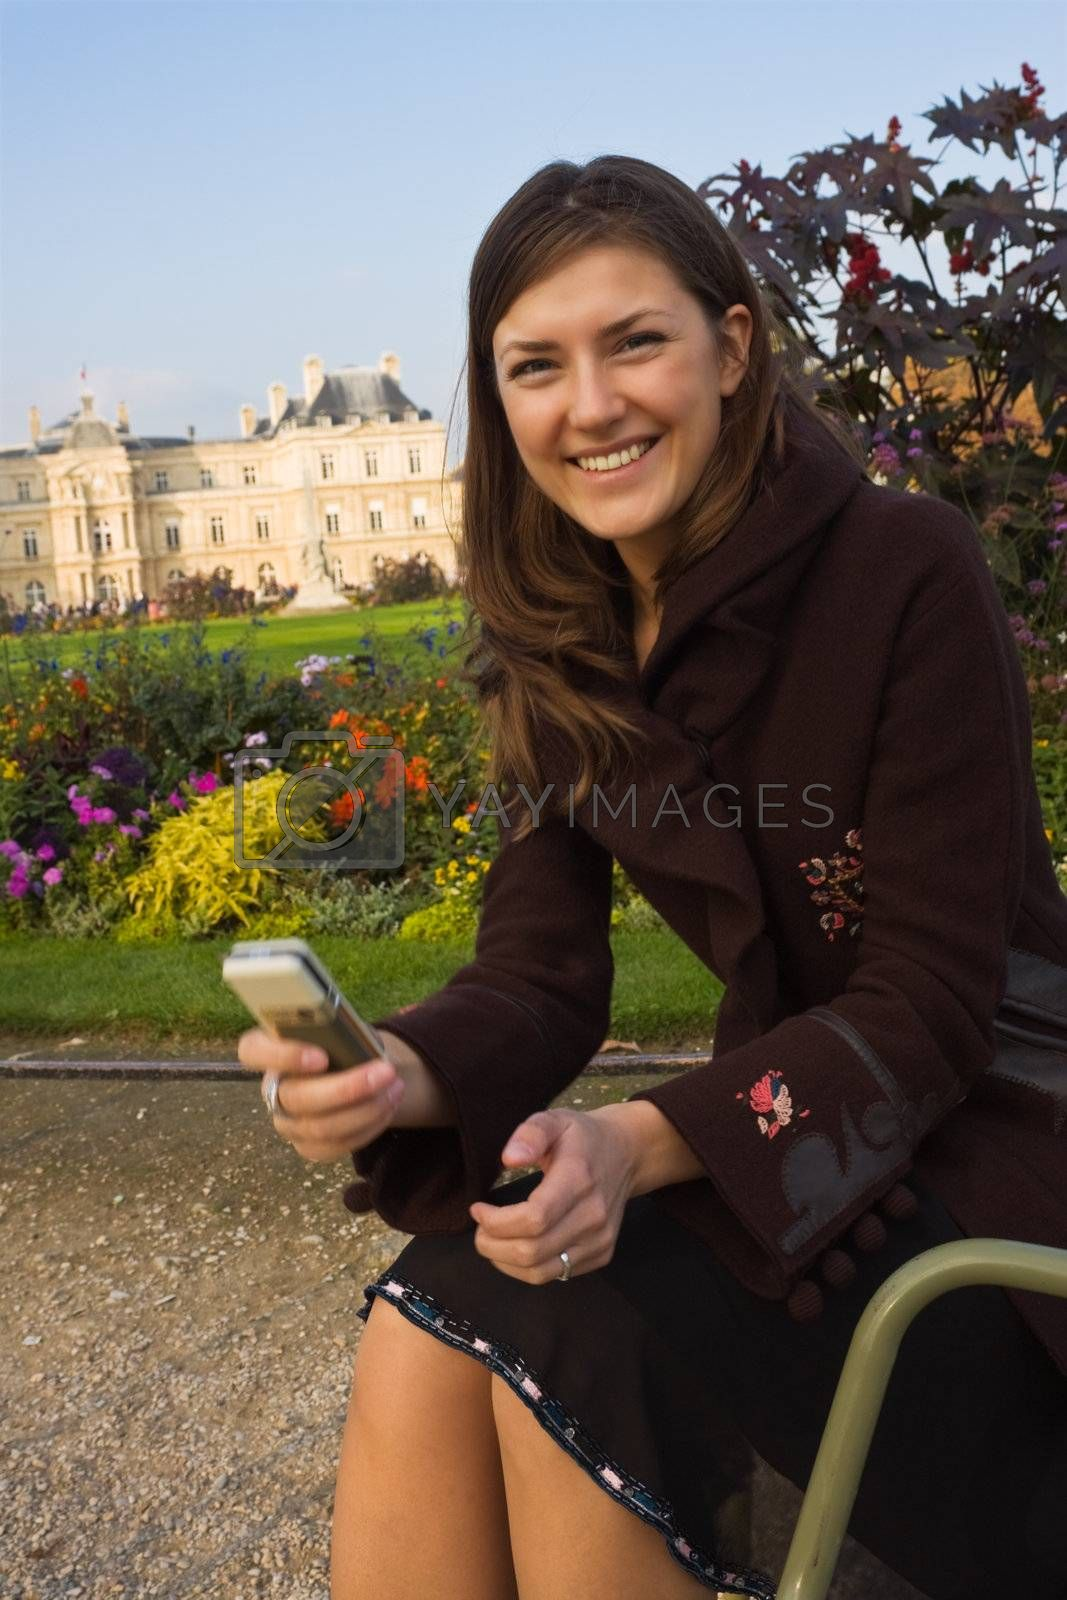 laughting girl with her mobile phone, sitting on metal chair in a park